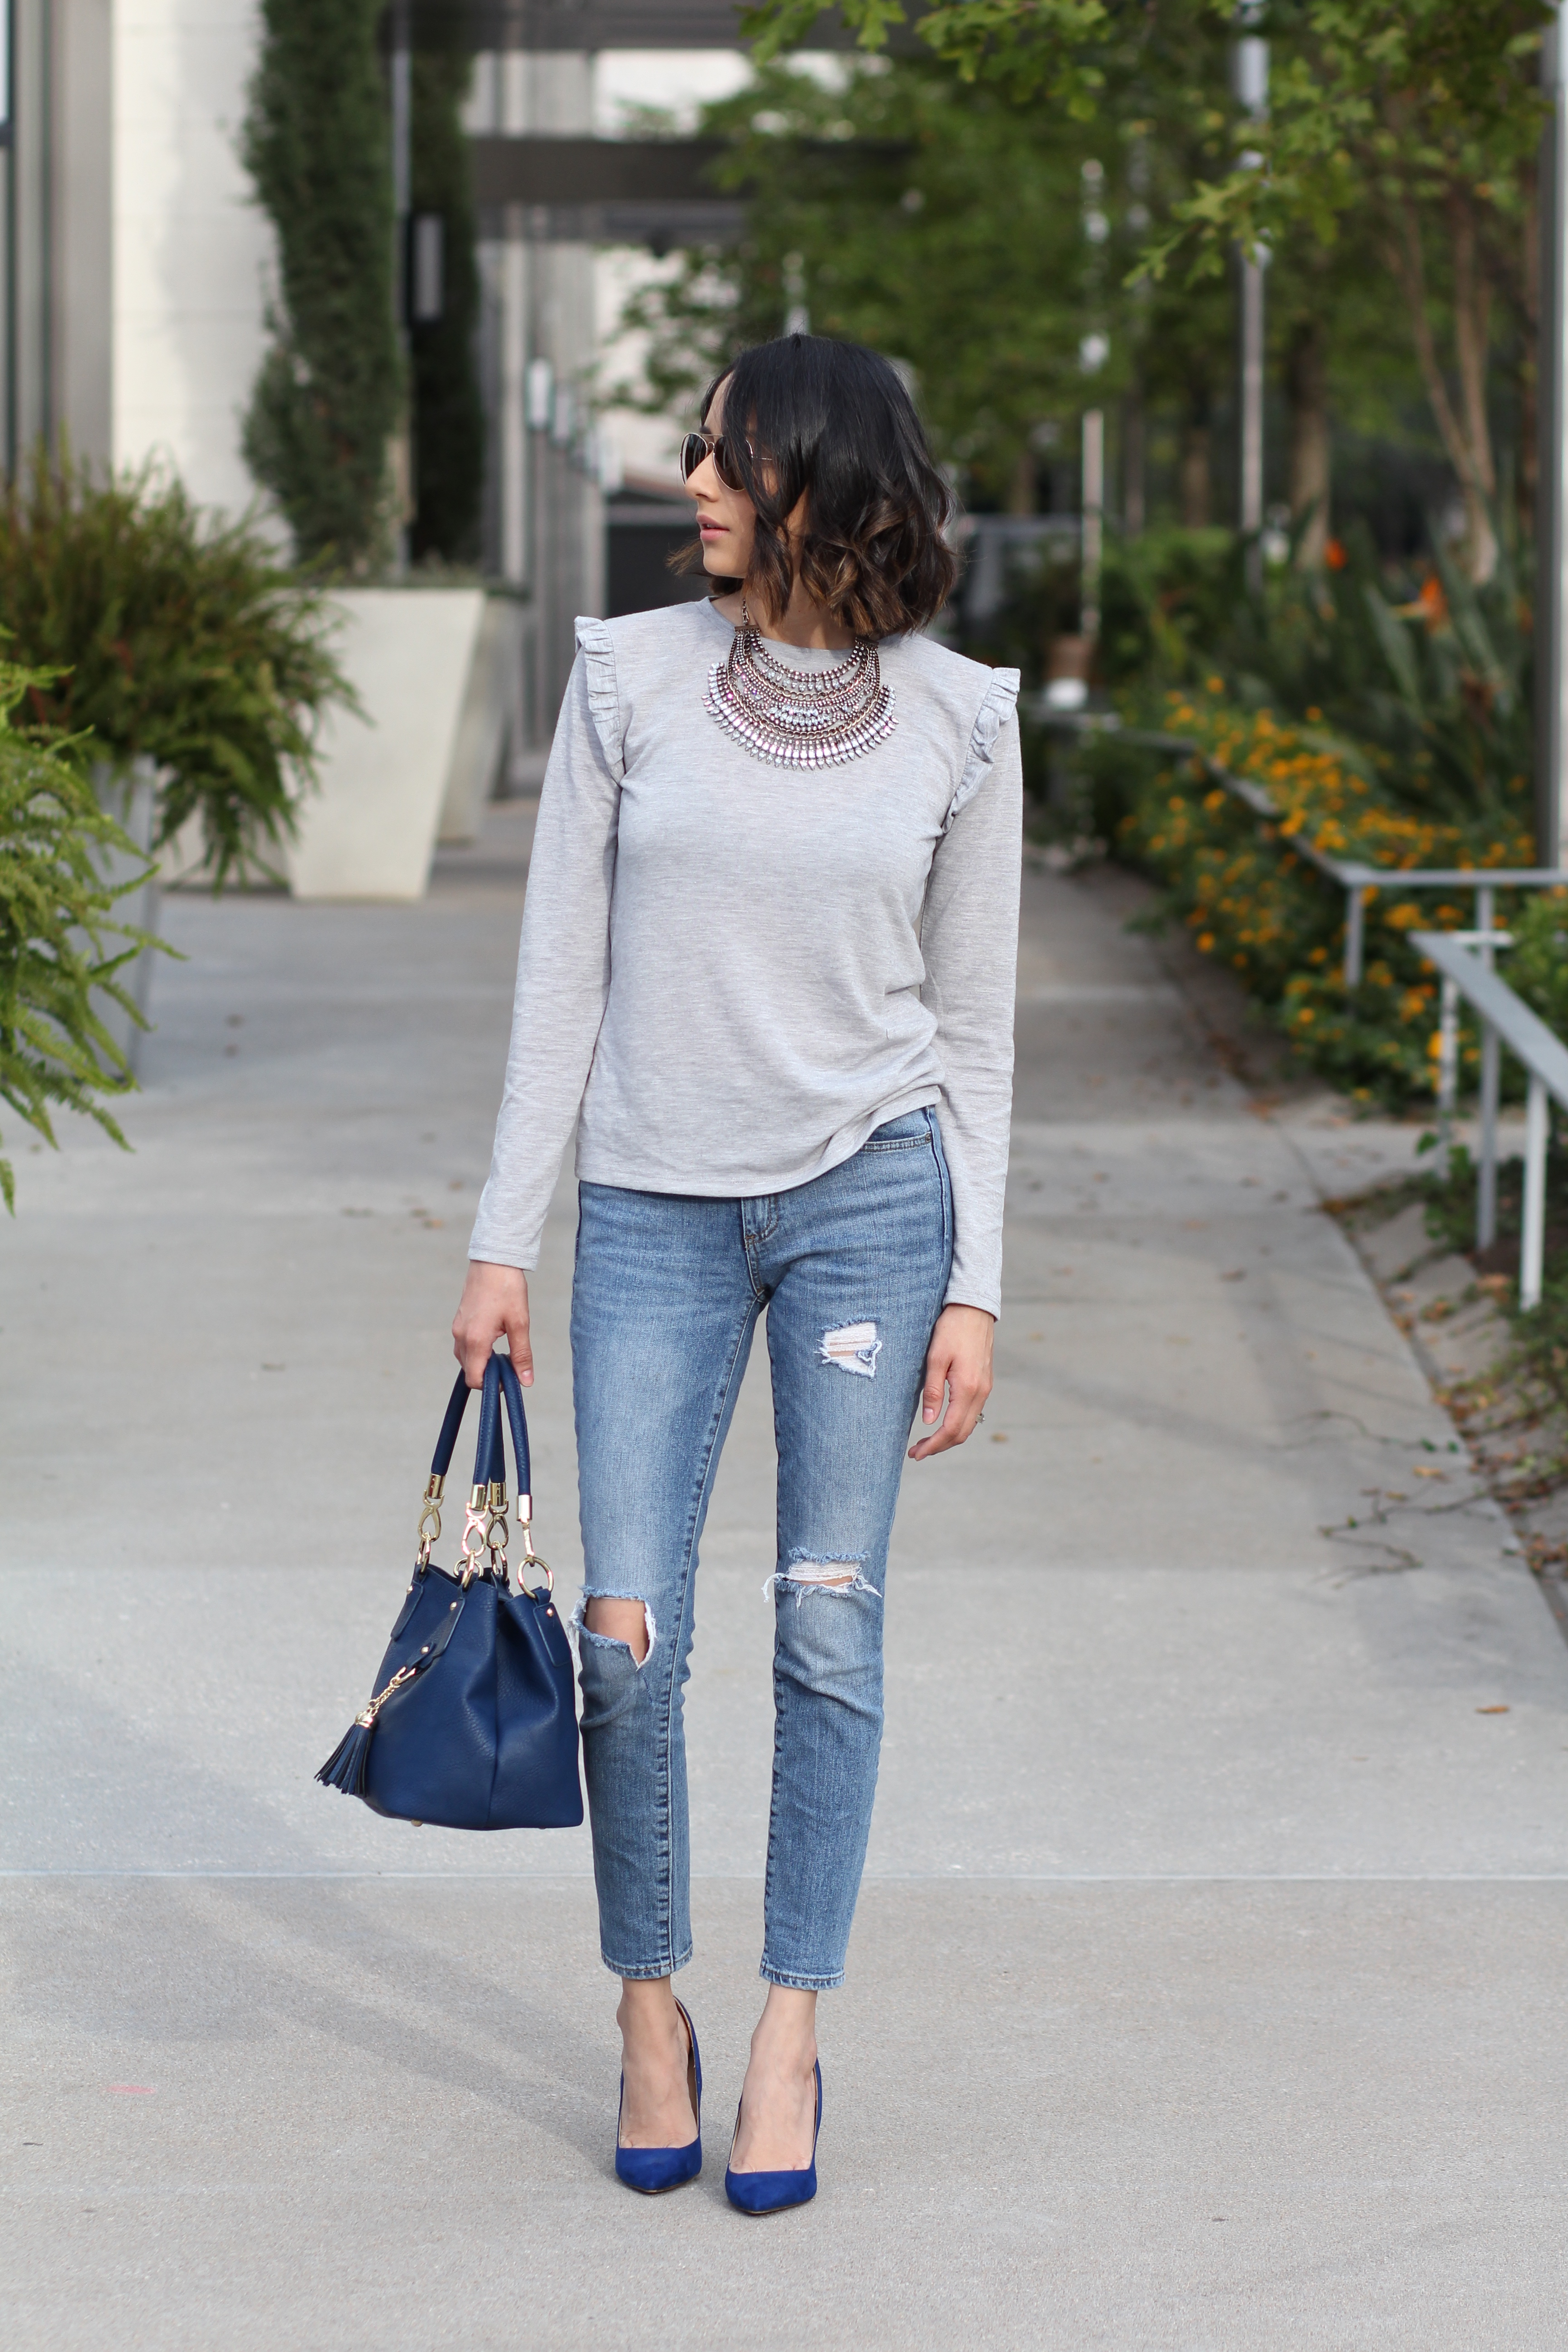 Ruffle top, ripped jeans & statement necklace